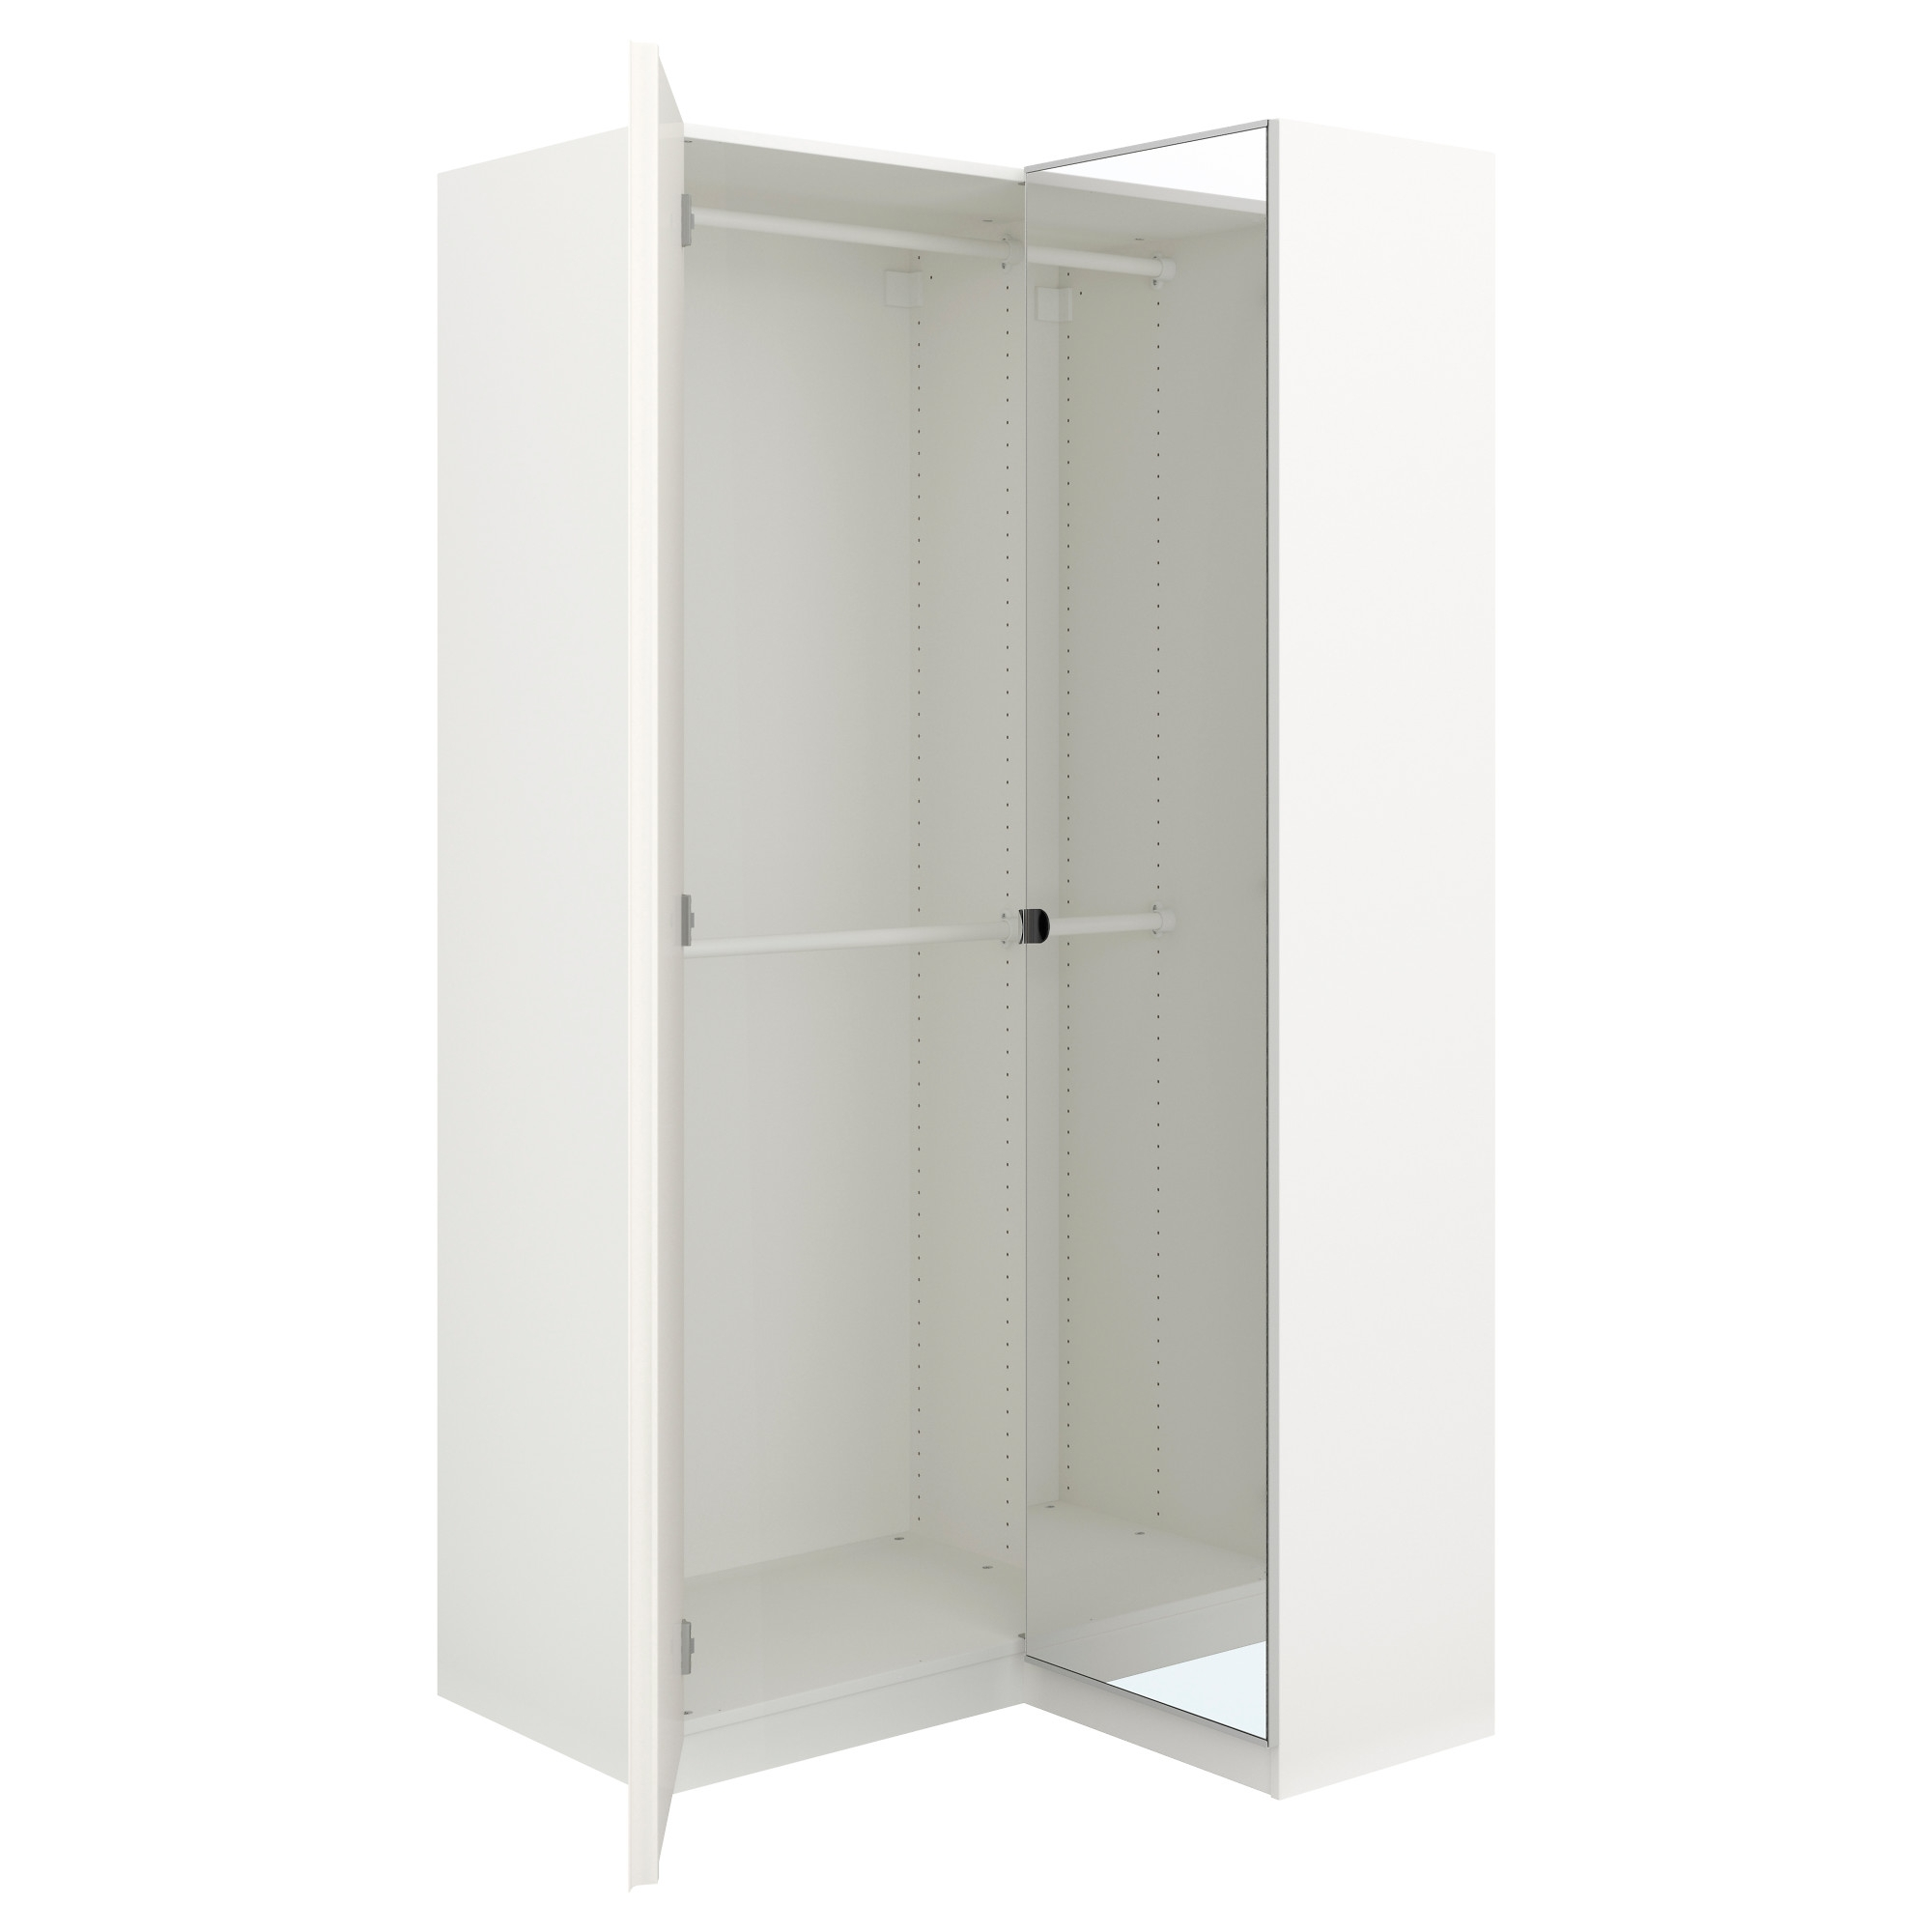 "Pax Corner Wardrobe – 43 1/2/34 5/8X93 1/8 "" – Ikea Intended For Most Current Corner Wardrobes (View 11 of 15)"